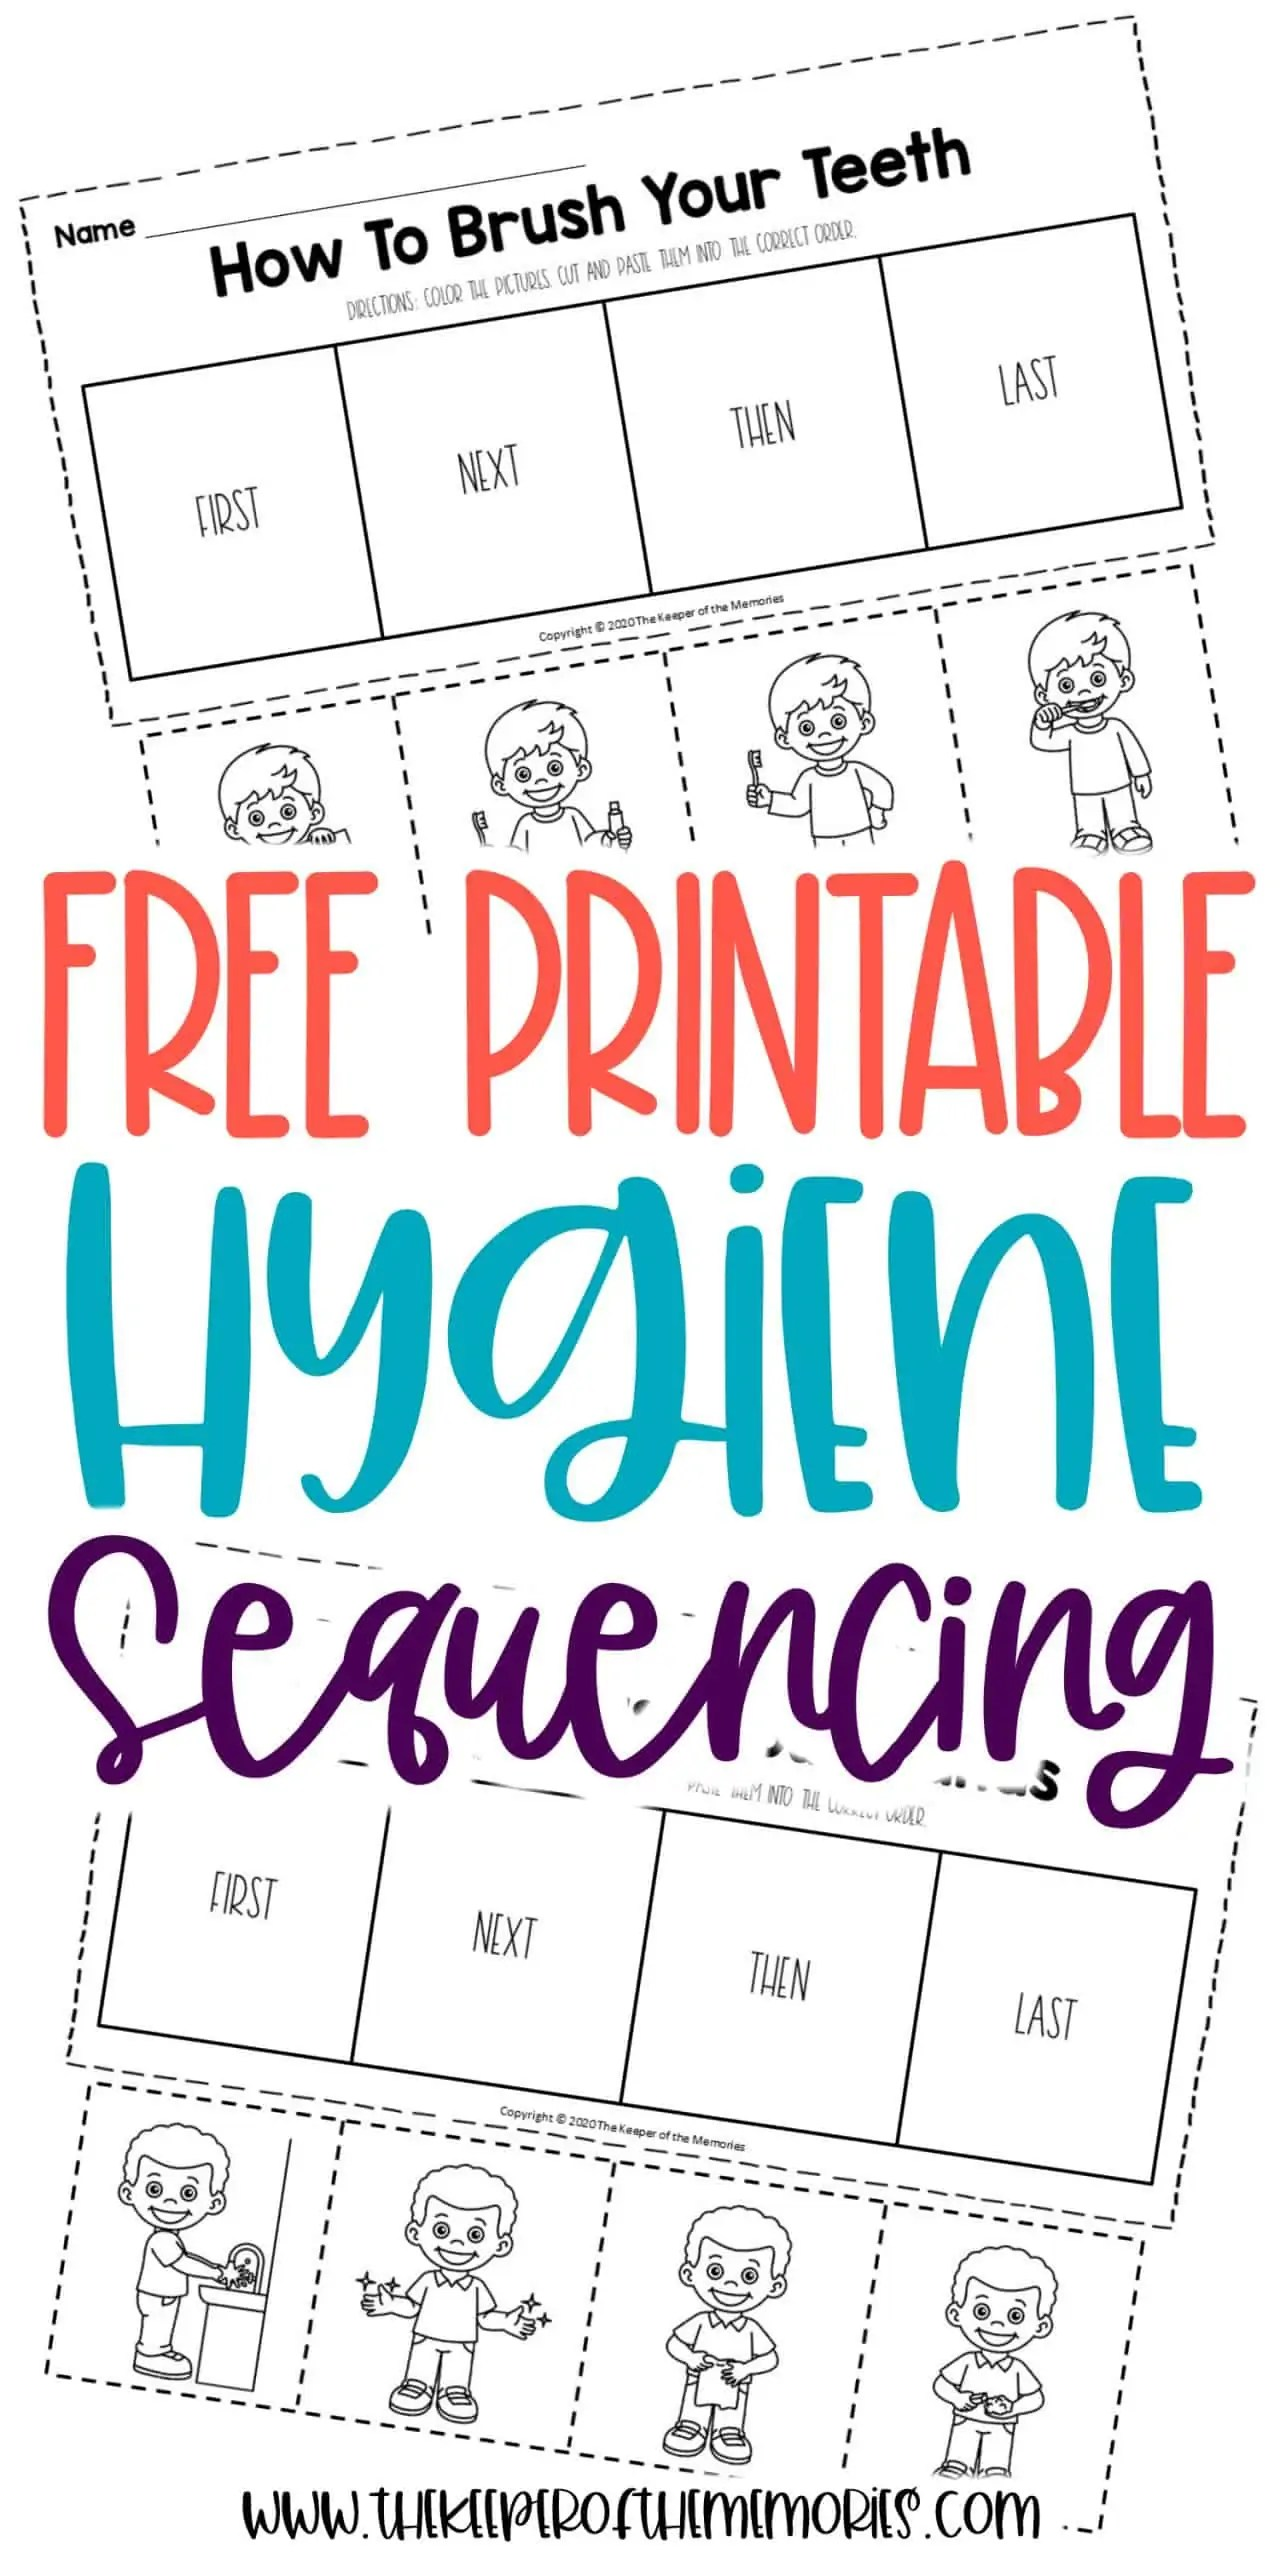 Free Printable Preschool Sequencing Worksheets